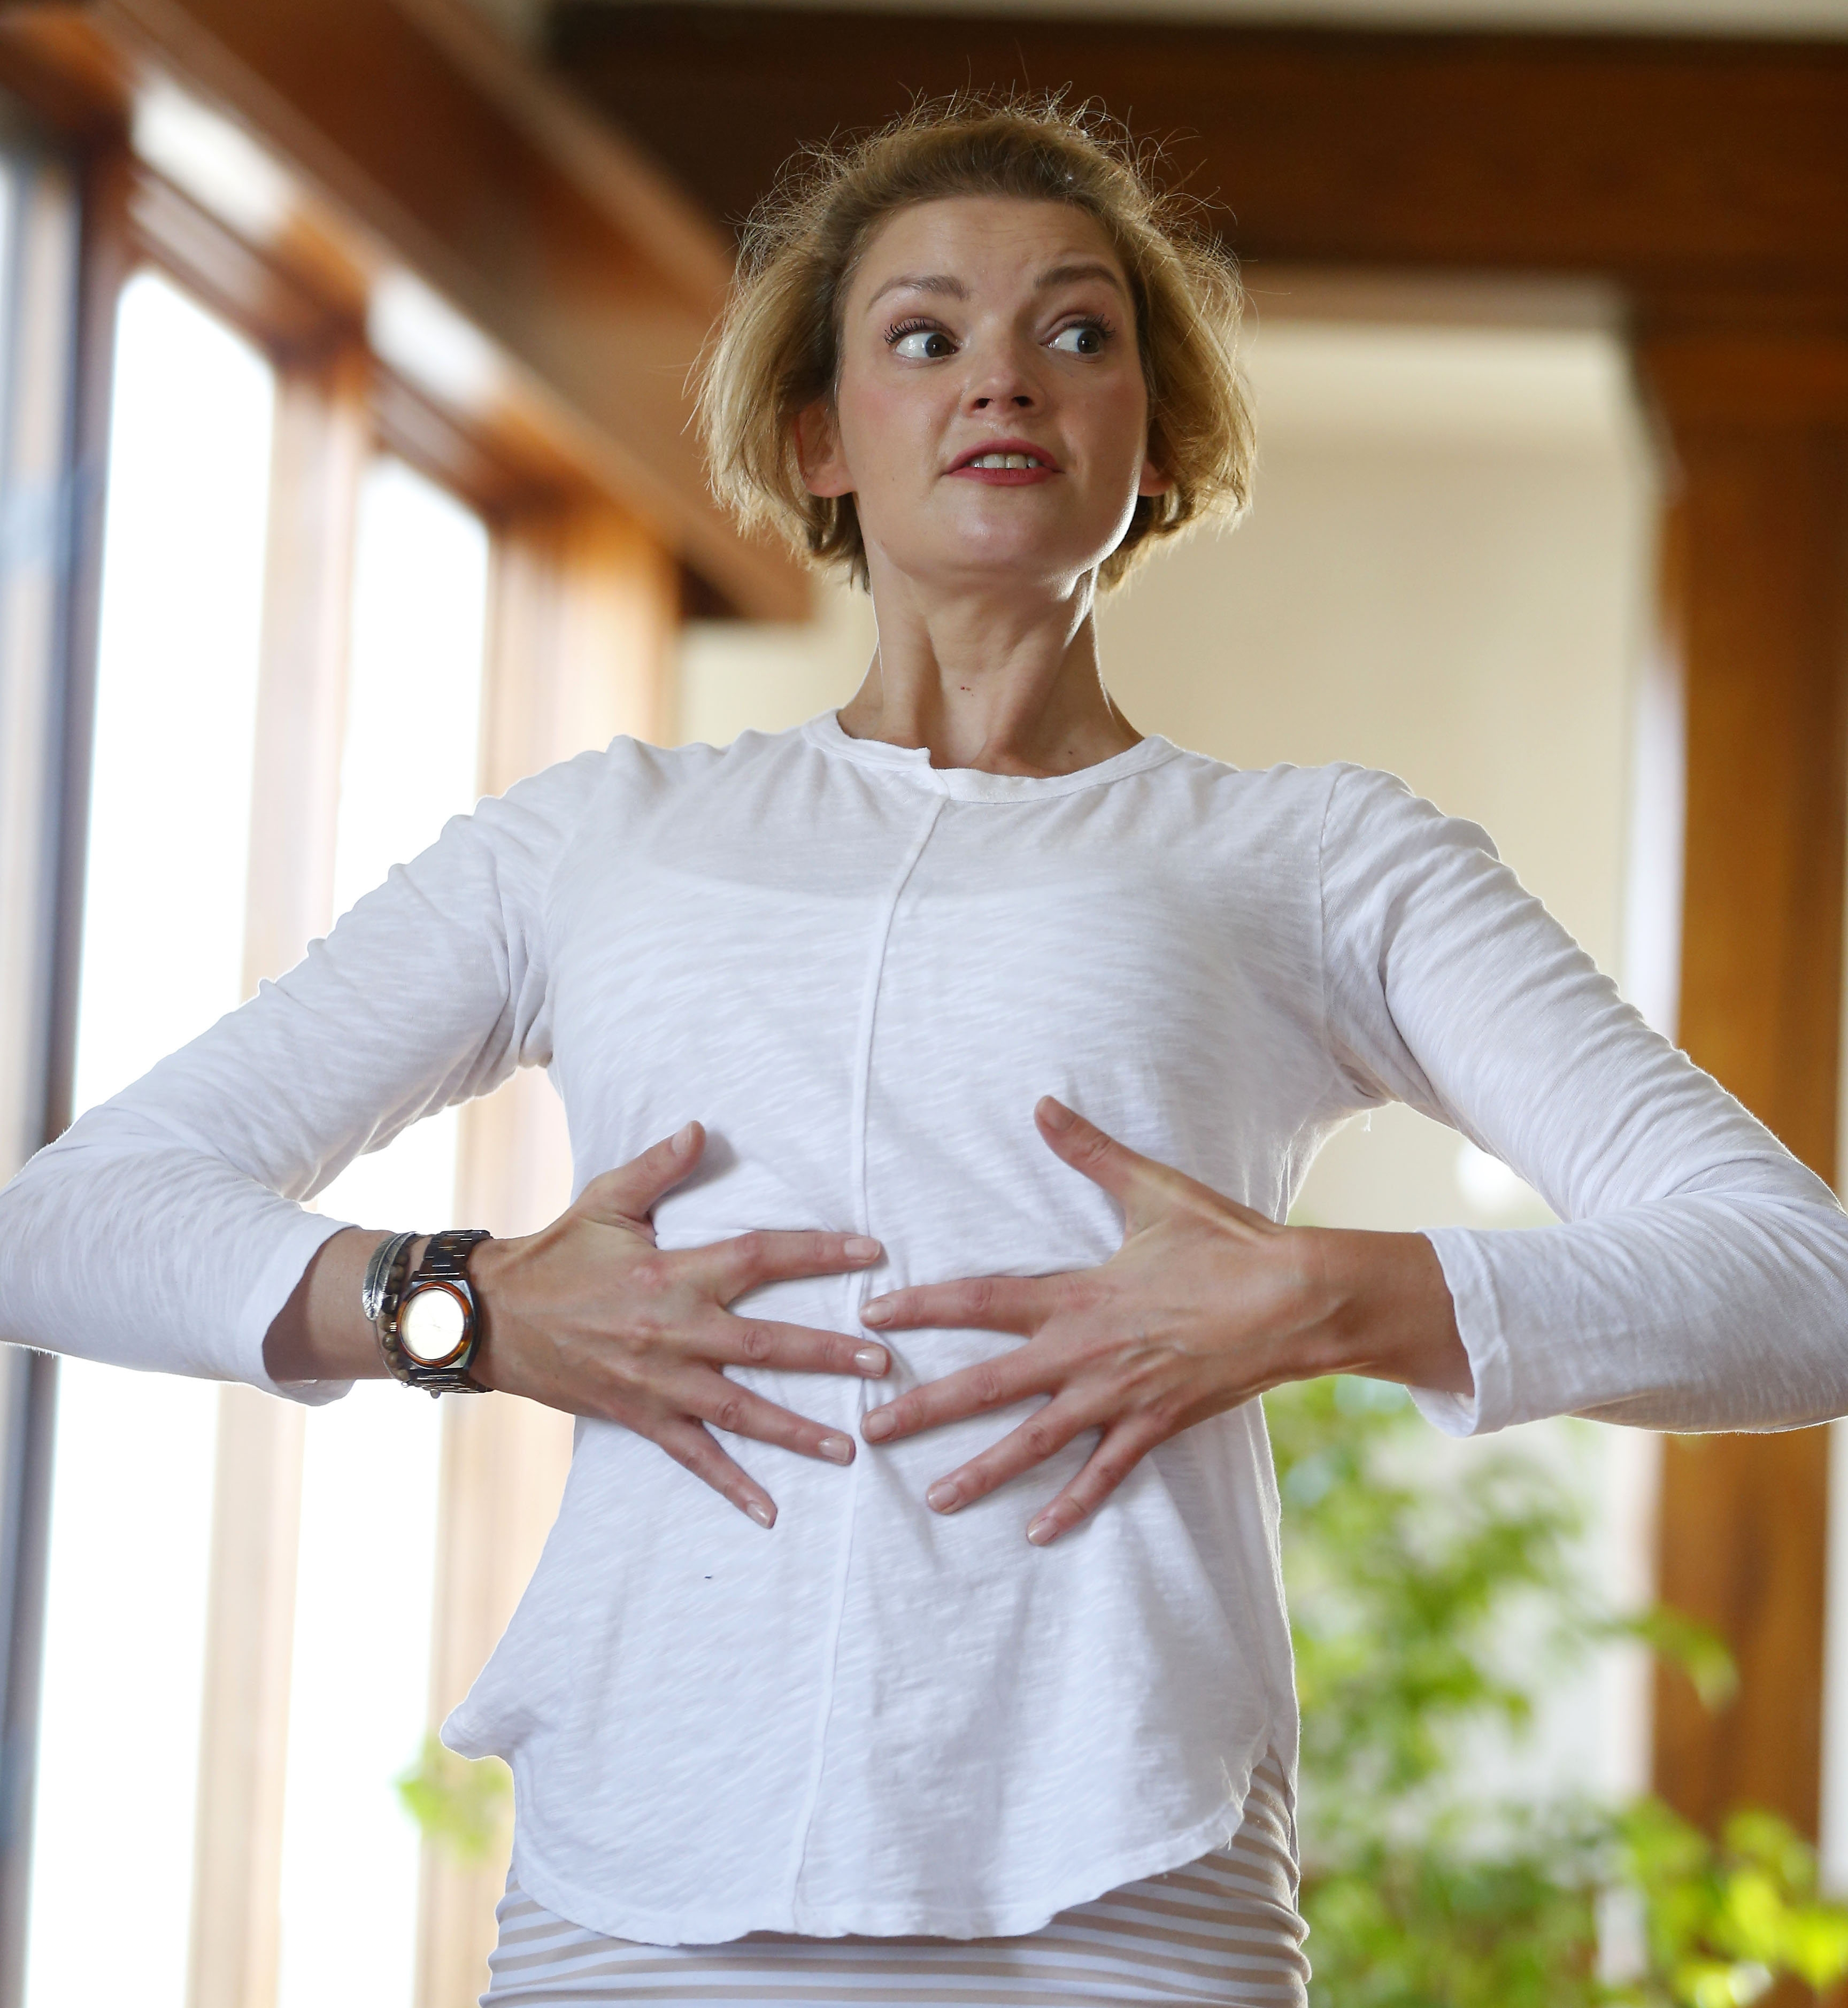 """""""Nutrition, improved sleep and exercise are important for anybody but especially for cancer survivors because they create improvement and a sense of control over your life."""" – Sara Szeglowski, Shine Yoga instructor"""